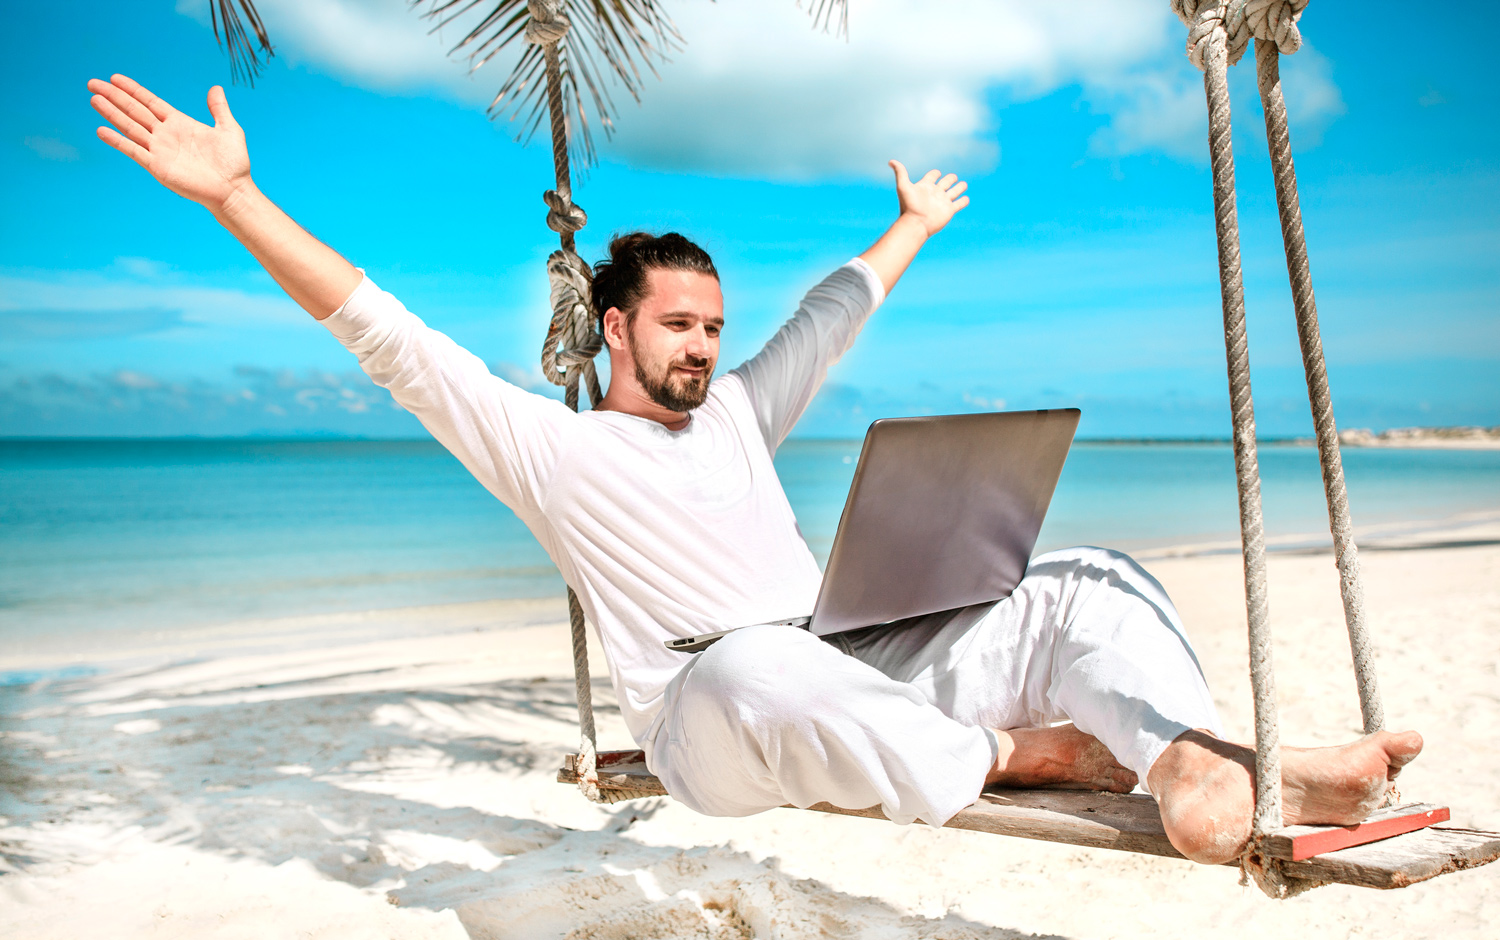 Location-independent-ocean-beach-paradise-man-sitting-on-a-swing-with-laptop.jpg